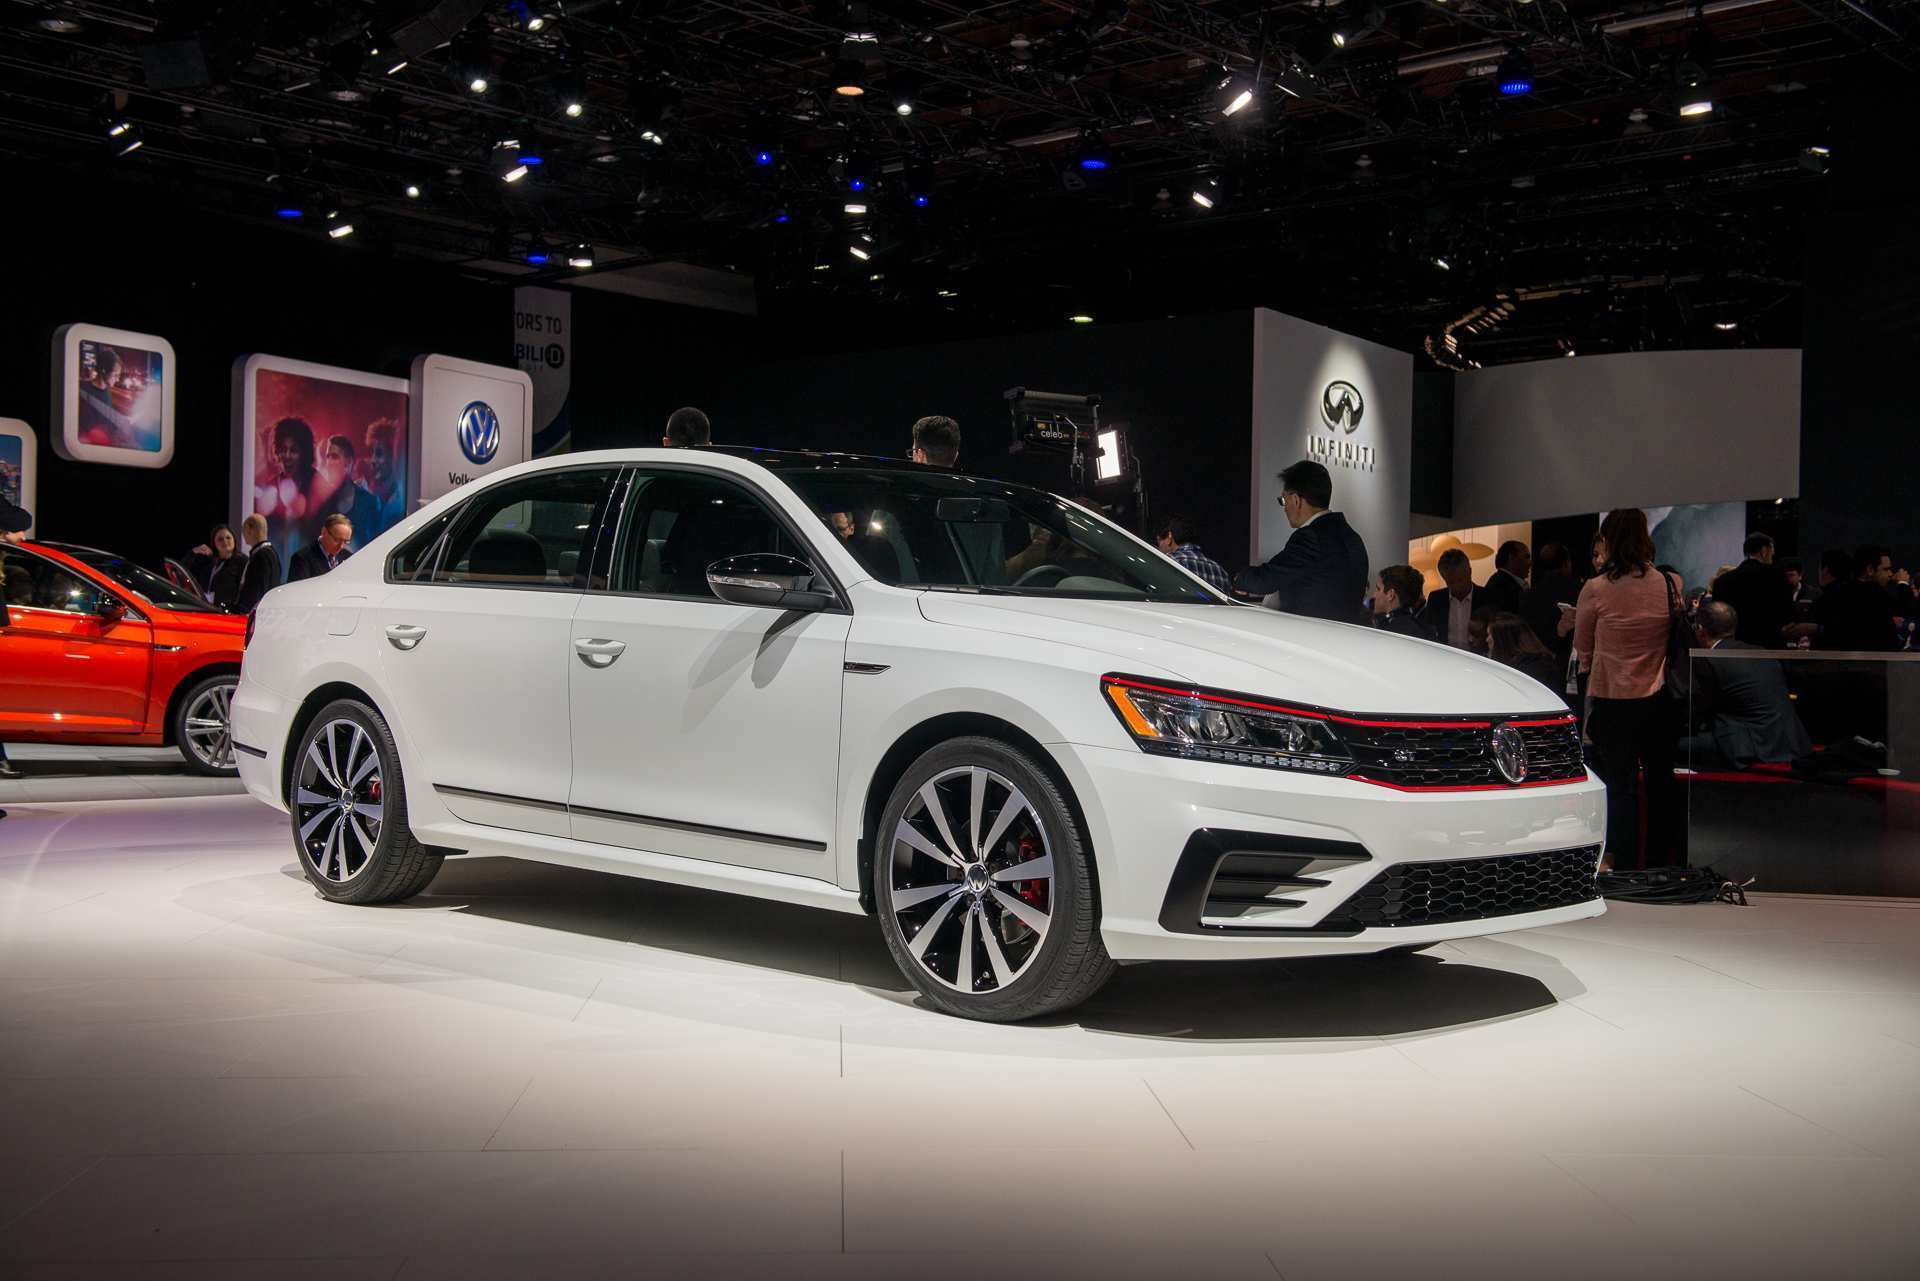 44 All New VW Passat Gt 2020 Prices for VW Passat Gt 2020